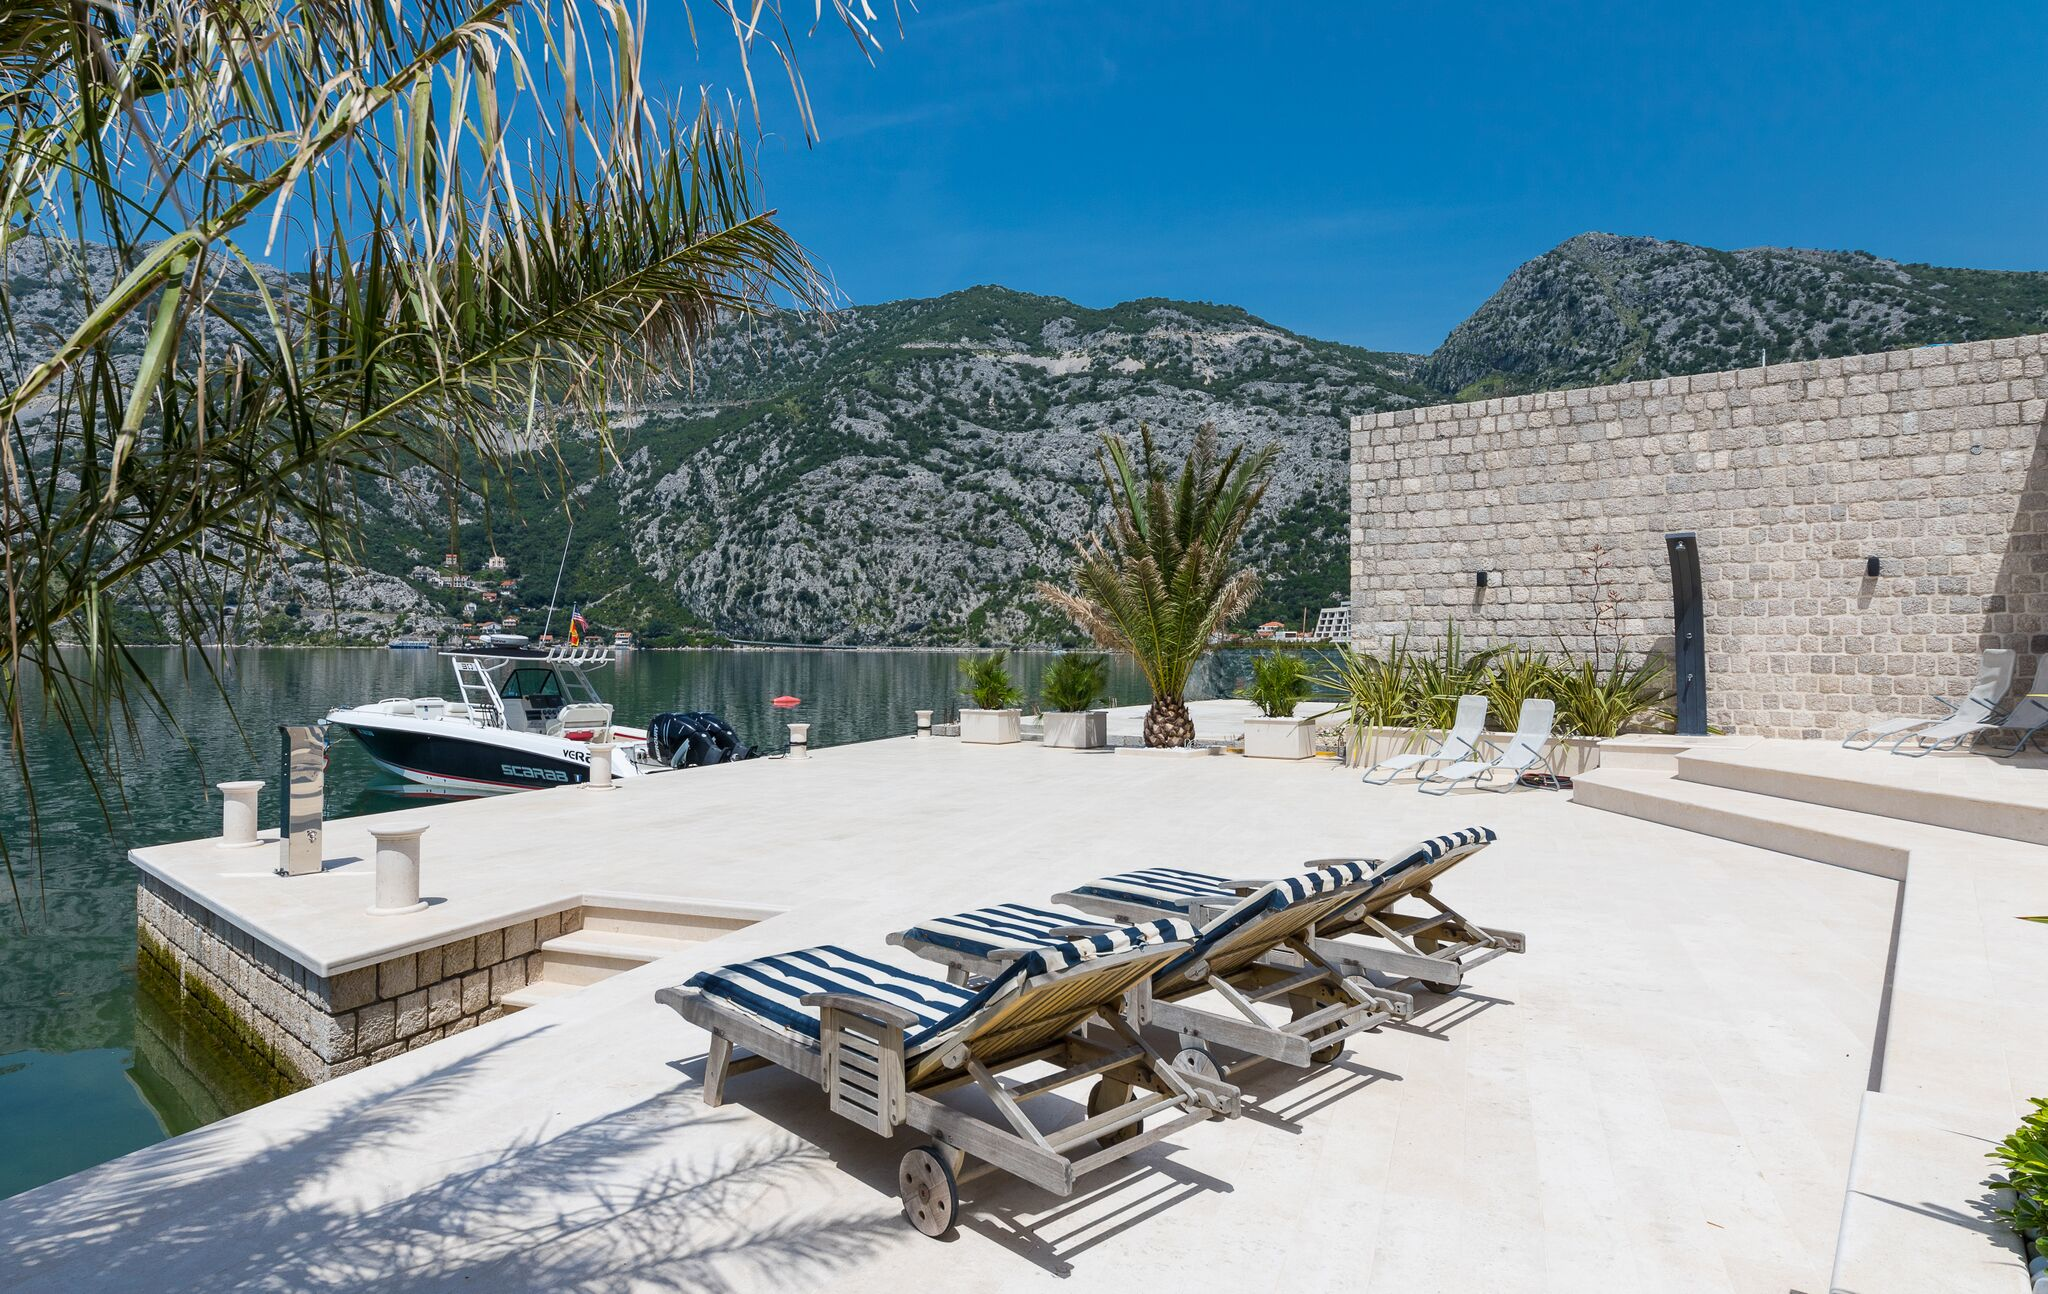 Luxury-waterfront-villa-with-swimming-pool-for-sale-in-Kotor (08).jpeg